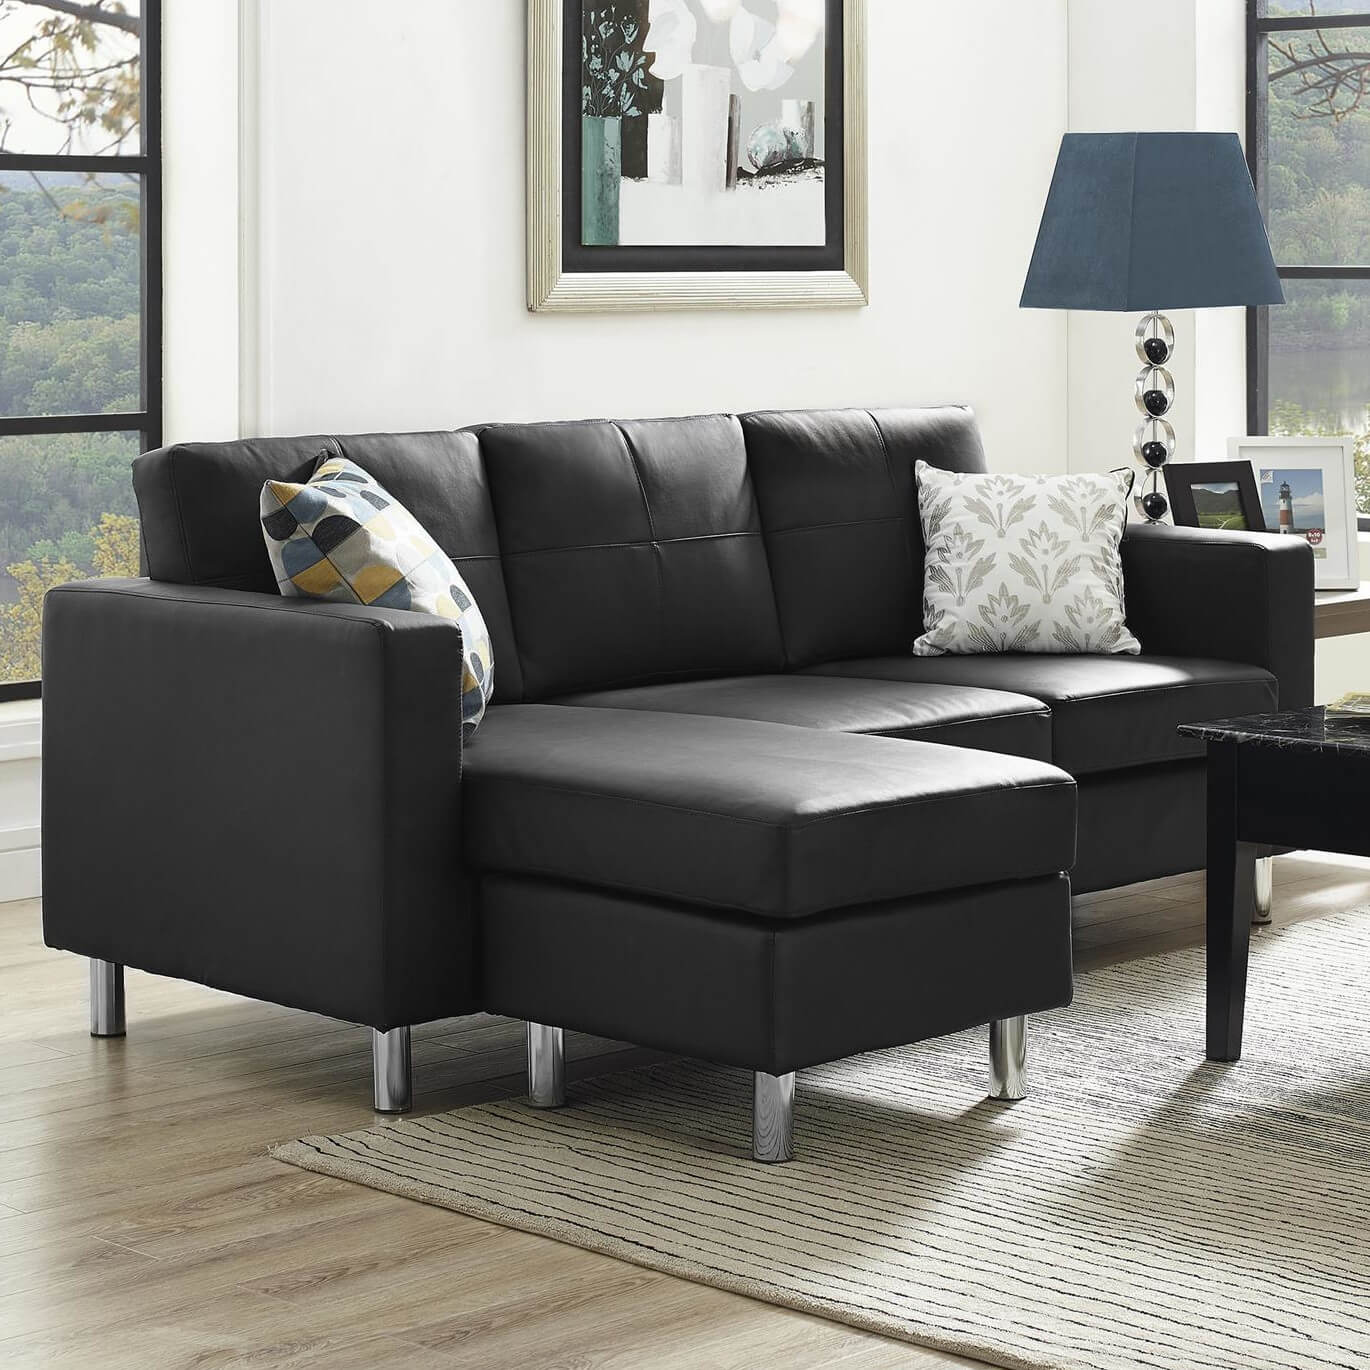 A Lovely Black Sectional With A Reversible Chaise. The Legs Are Aluminum,  And The Piece Is Upholstered In A Tailored Faux Leather In Black, ...